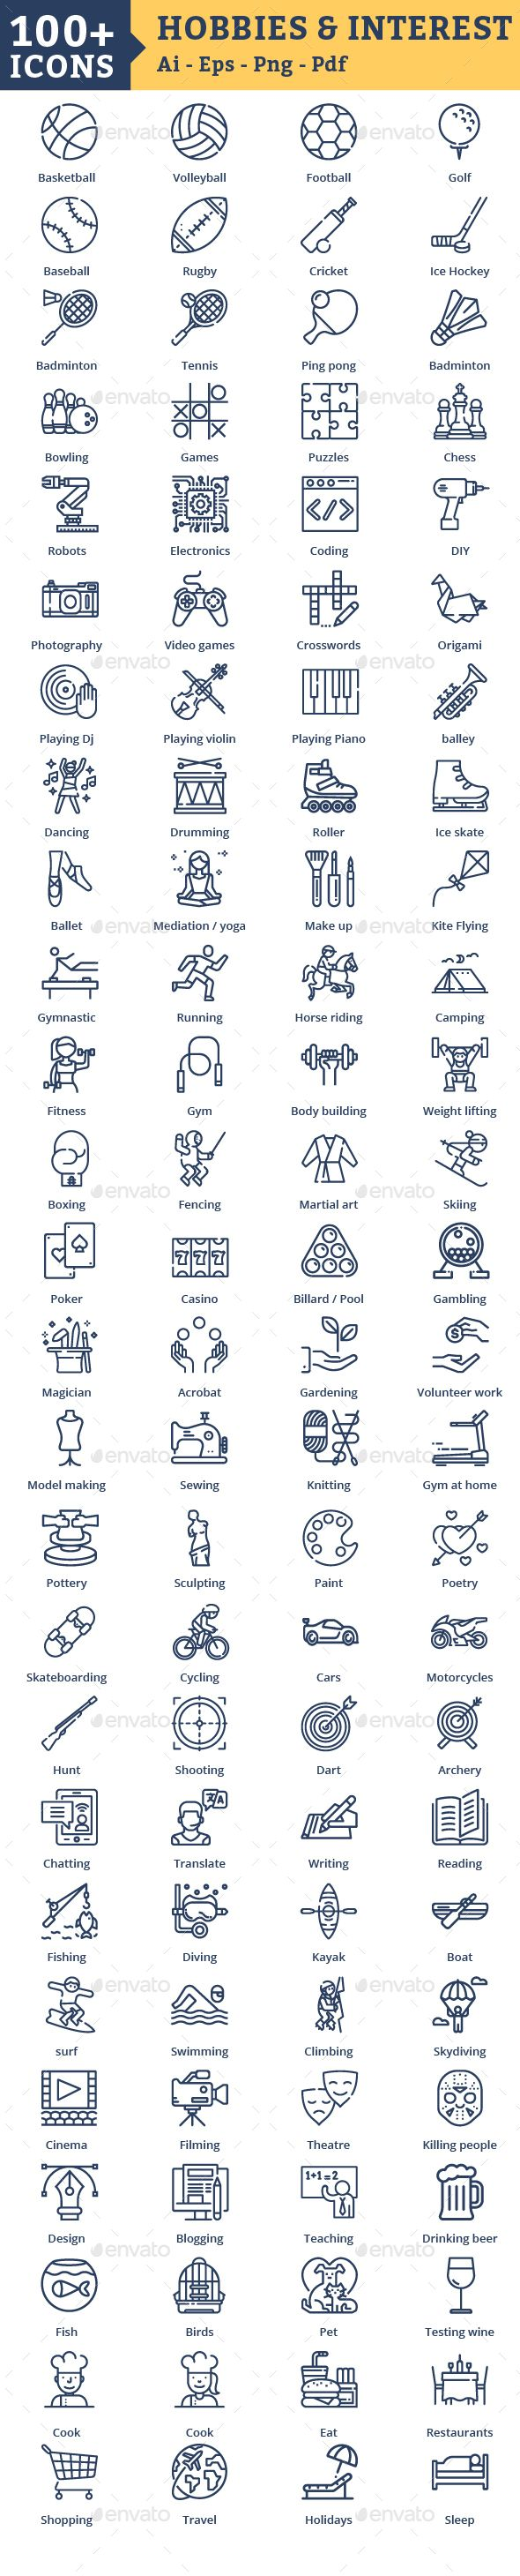 Hobbies Icons And Interests Icons Download Icon Resume Icons Best Icons